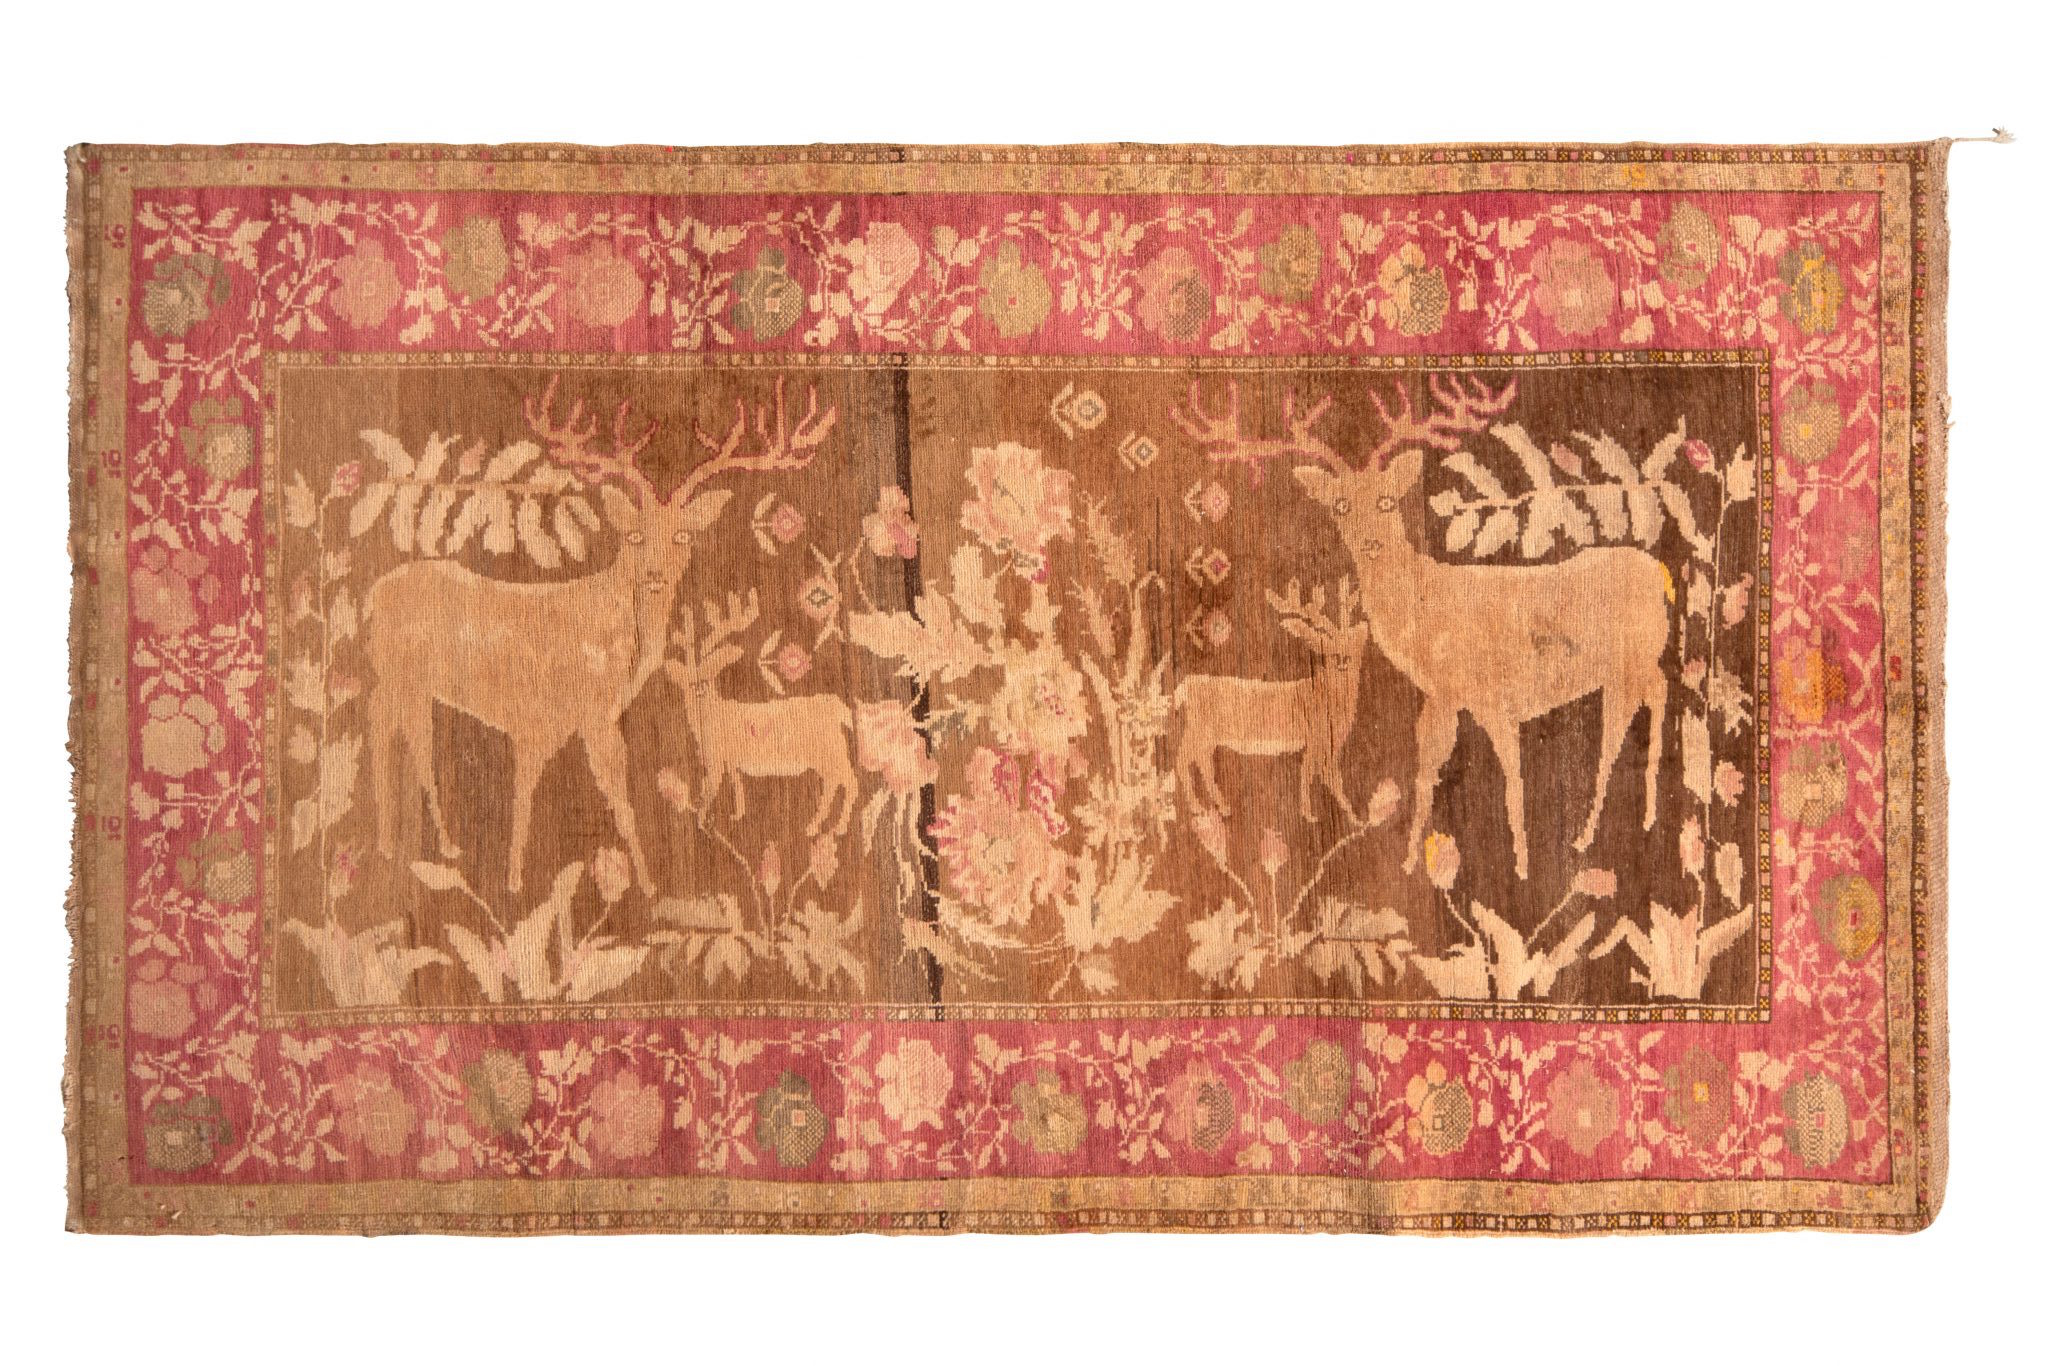 An Abbreviated Guide to Pictorial Rugs